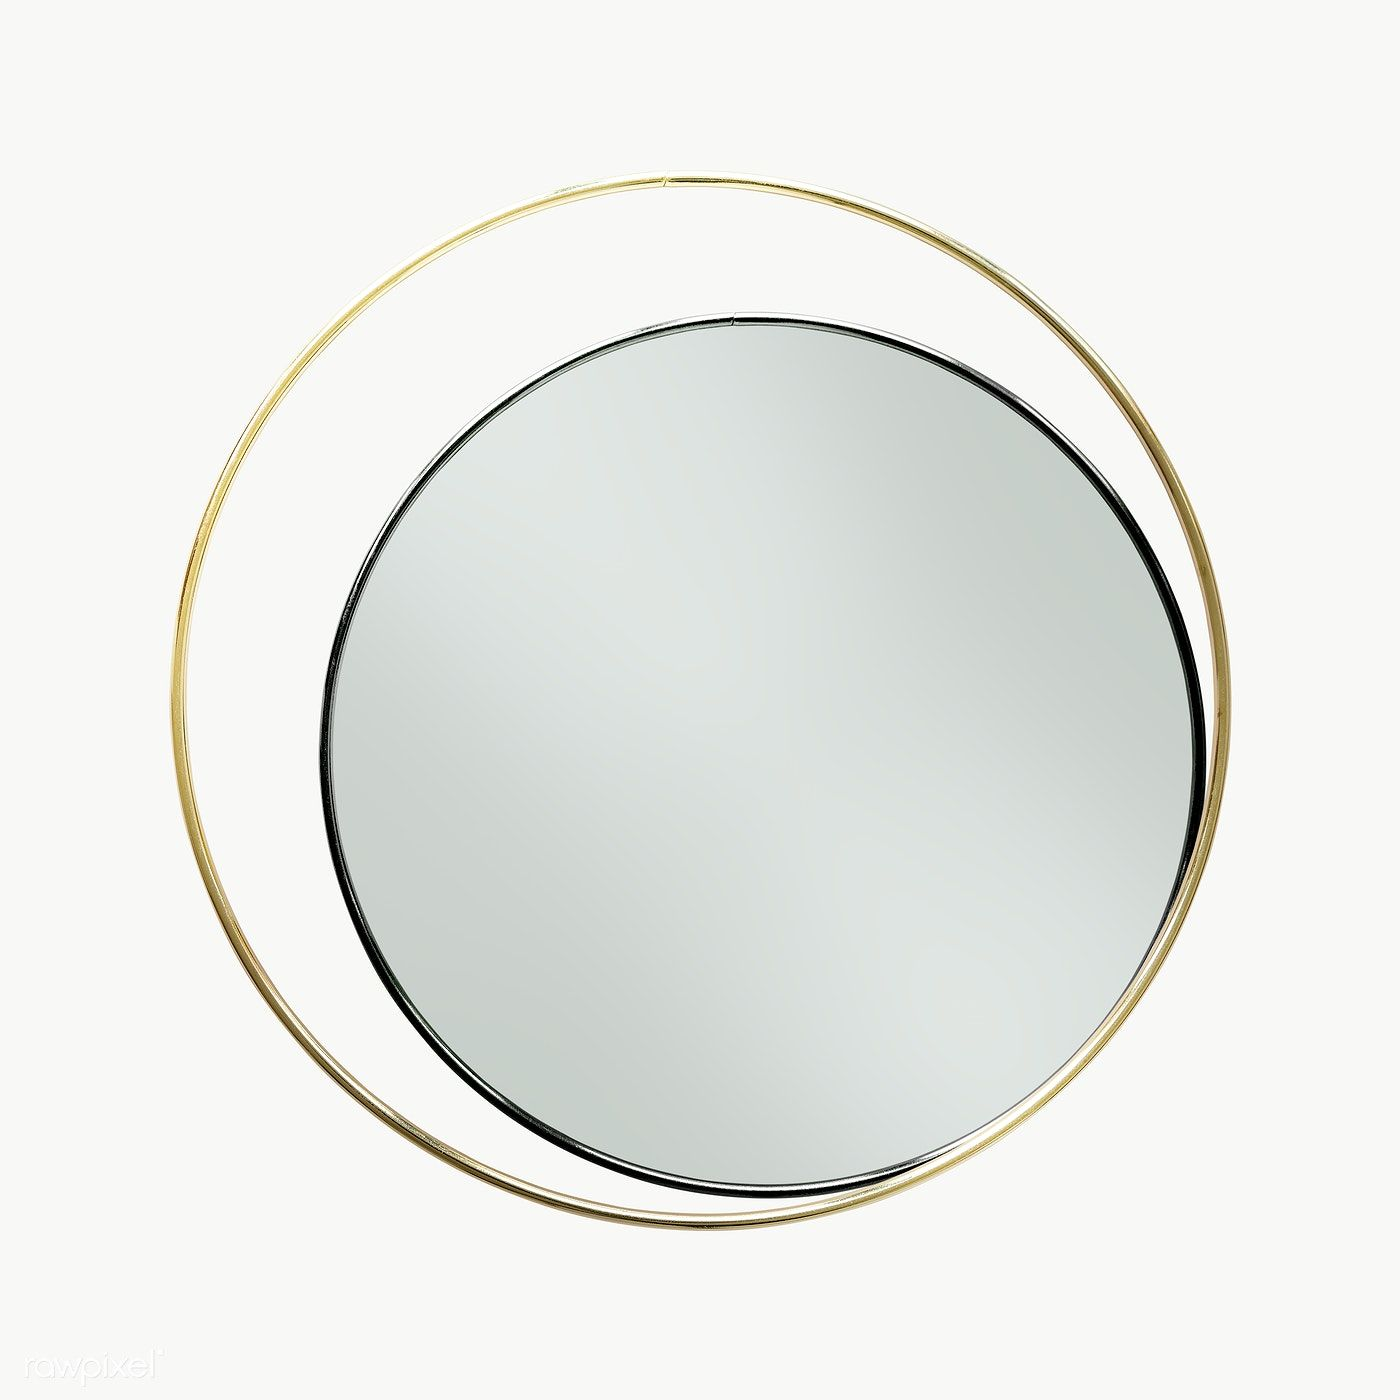 Download Premium Png Of Double Mirror Transparent Png 2036856 In 2020 Gold Picture Frames Double Mirror Gold Framed Mirror